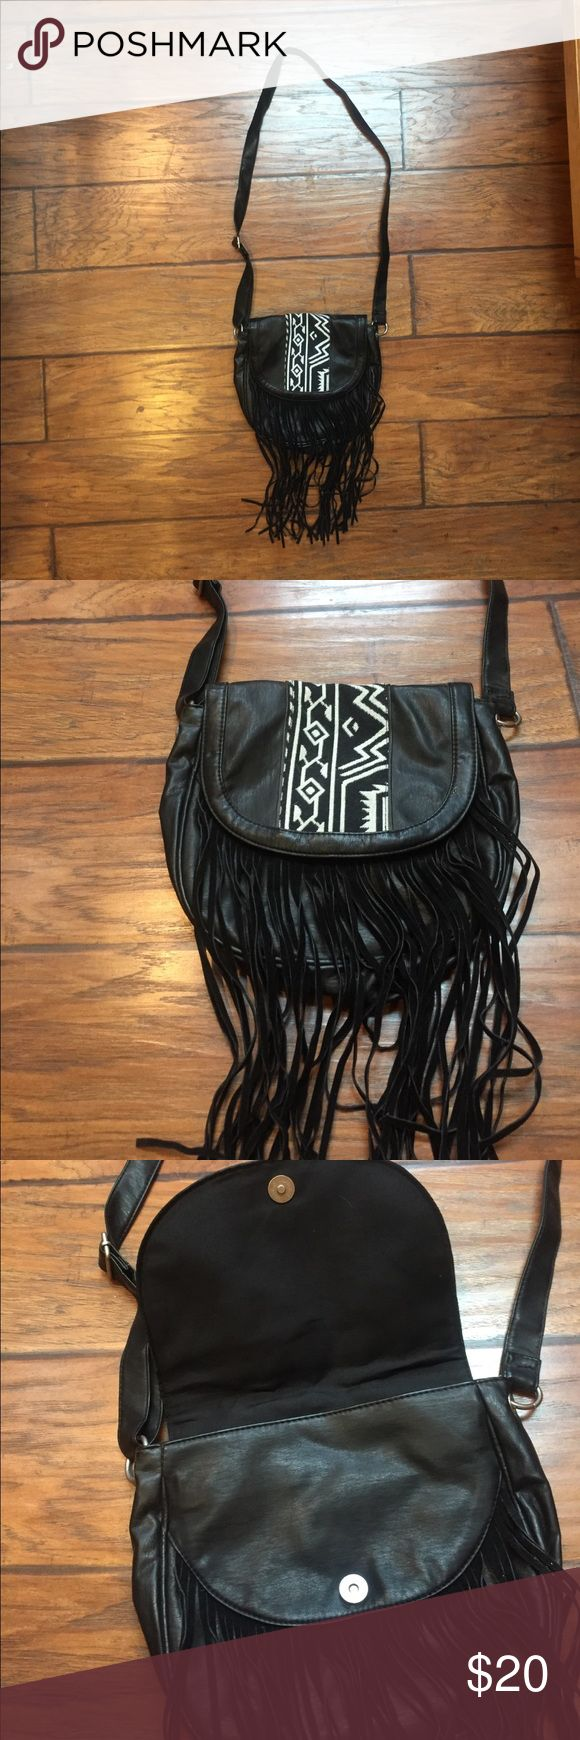 MUDD Hobo Style Aztec Purse with Fringe Hobo style purse from MUDD, carried once and daughter didn't like it.  Strap is adjustable. Mudd Bags Crossbody Bags